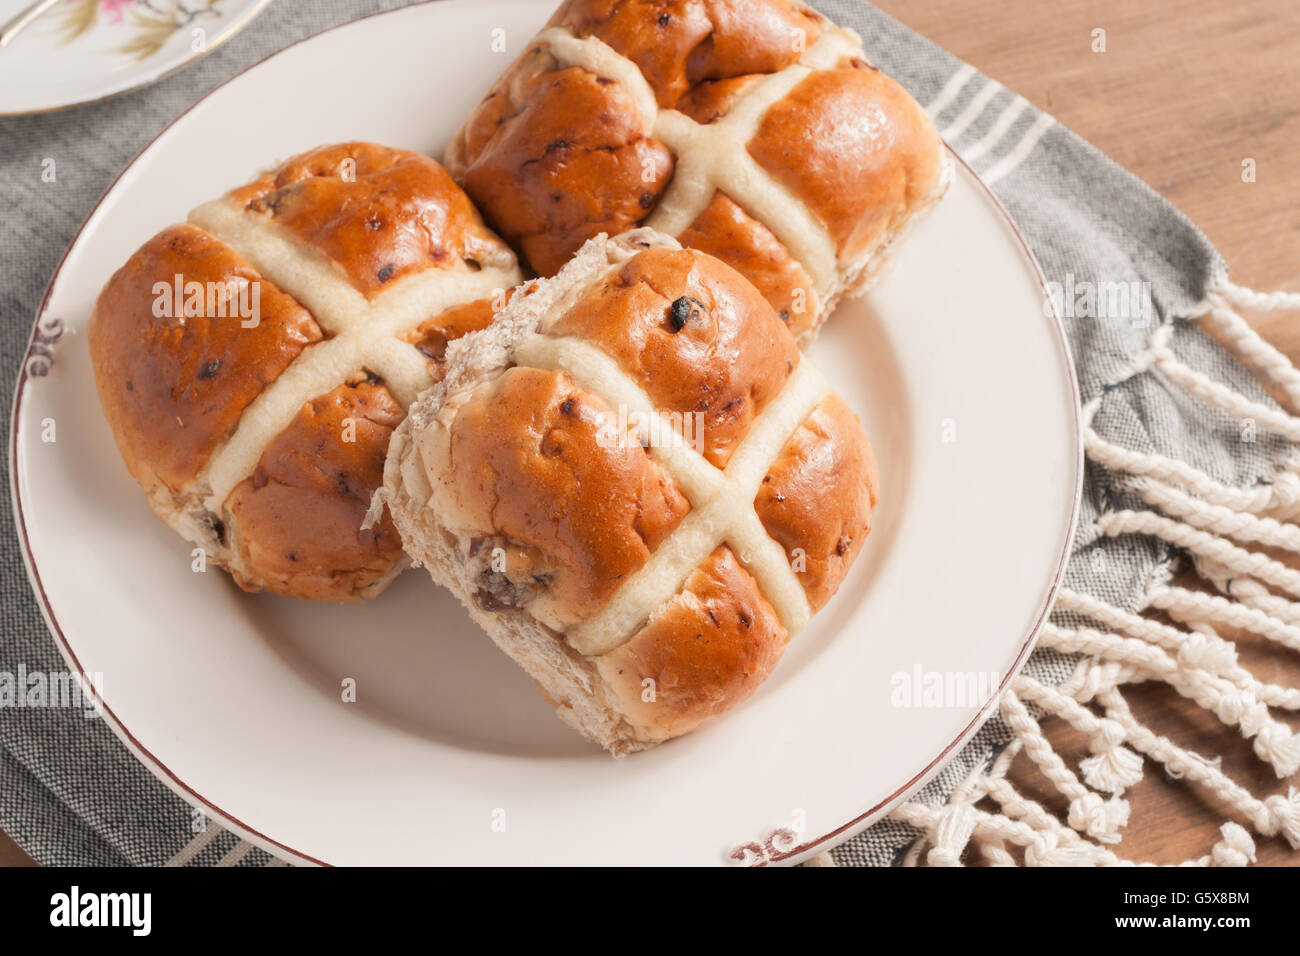 Hot Cross Buns traditionally eaten hot or toasted during Lent - Stock Image